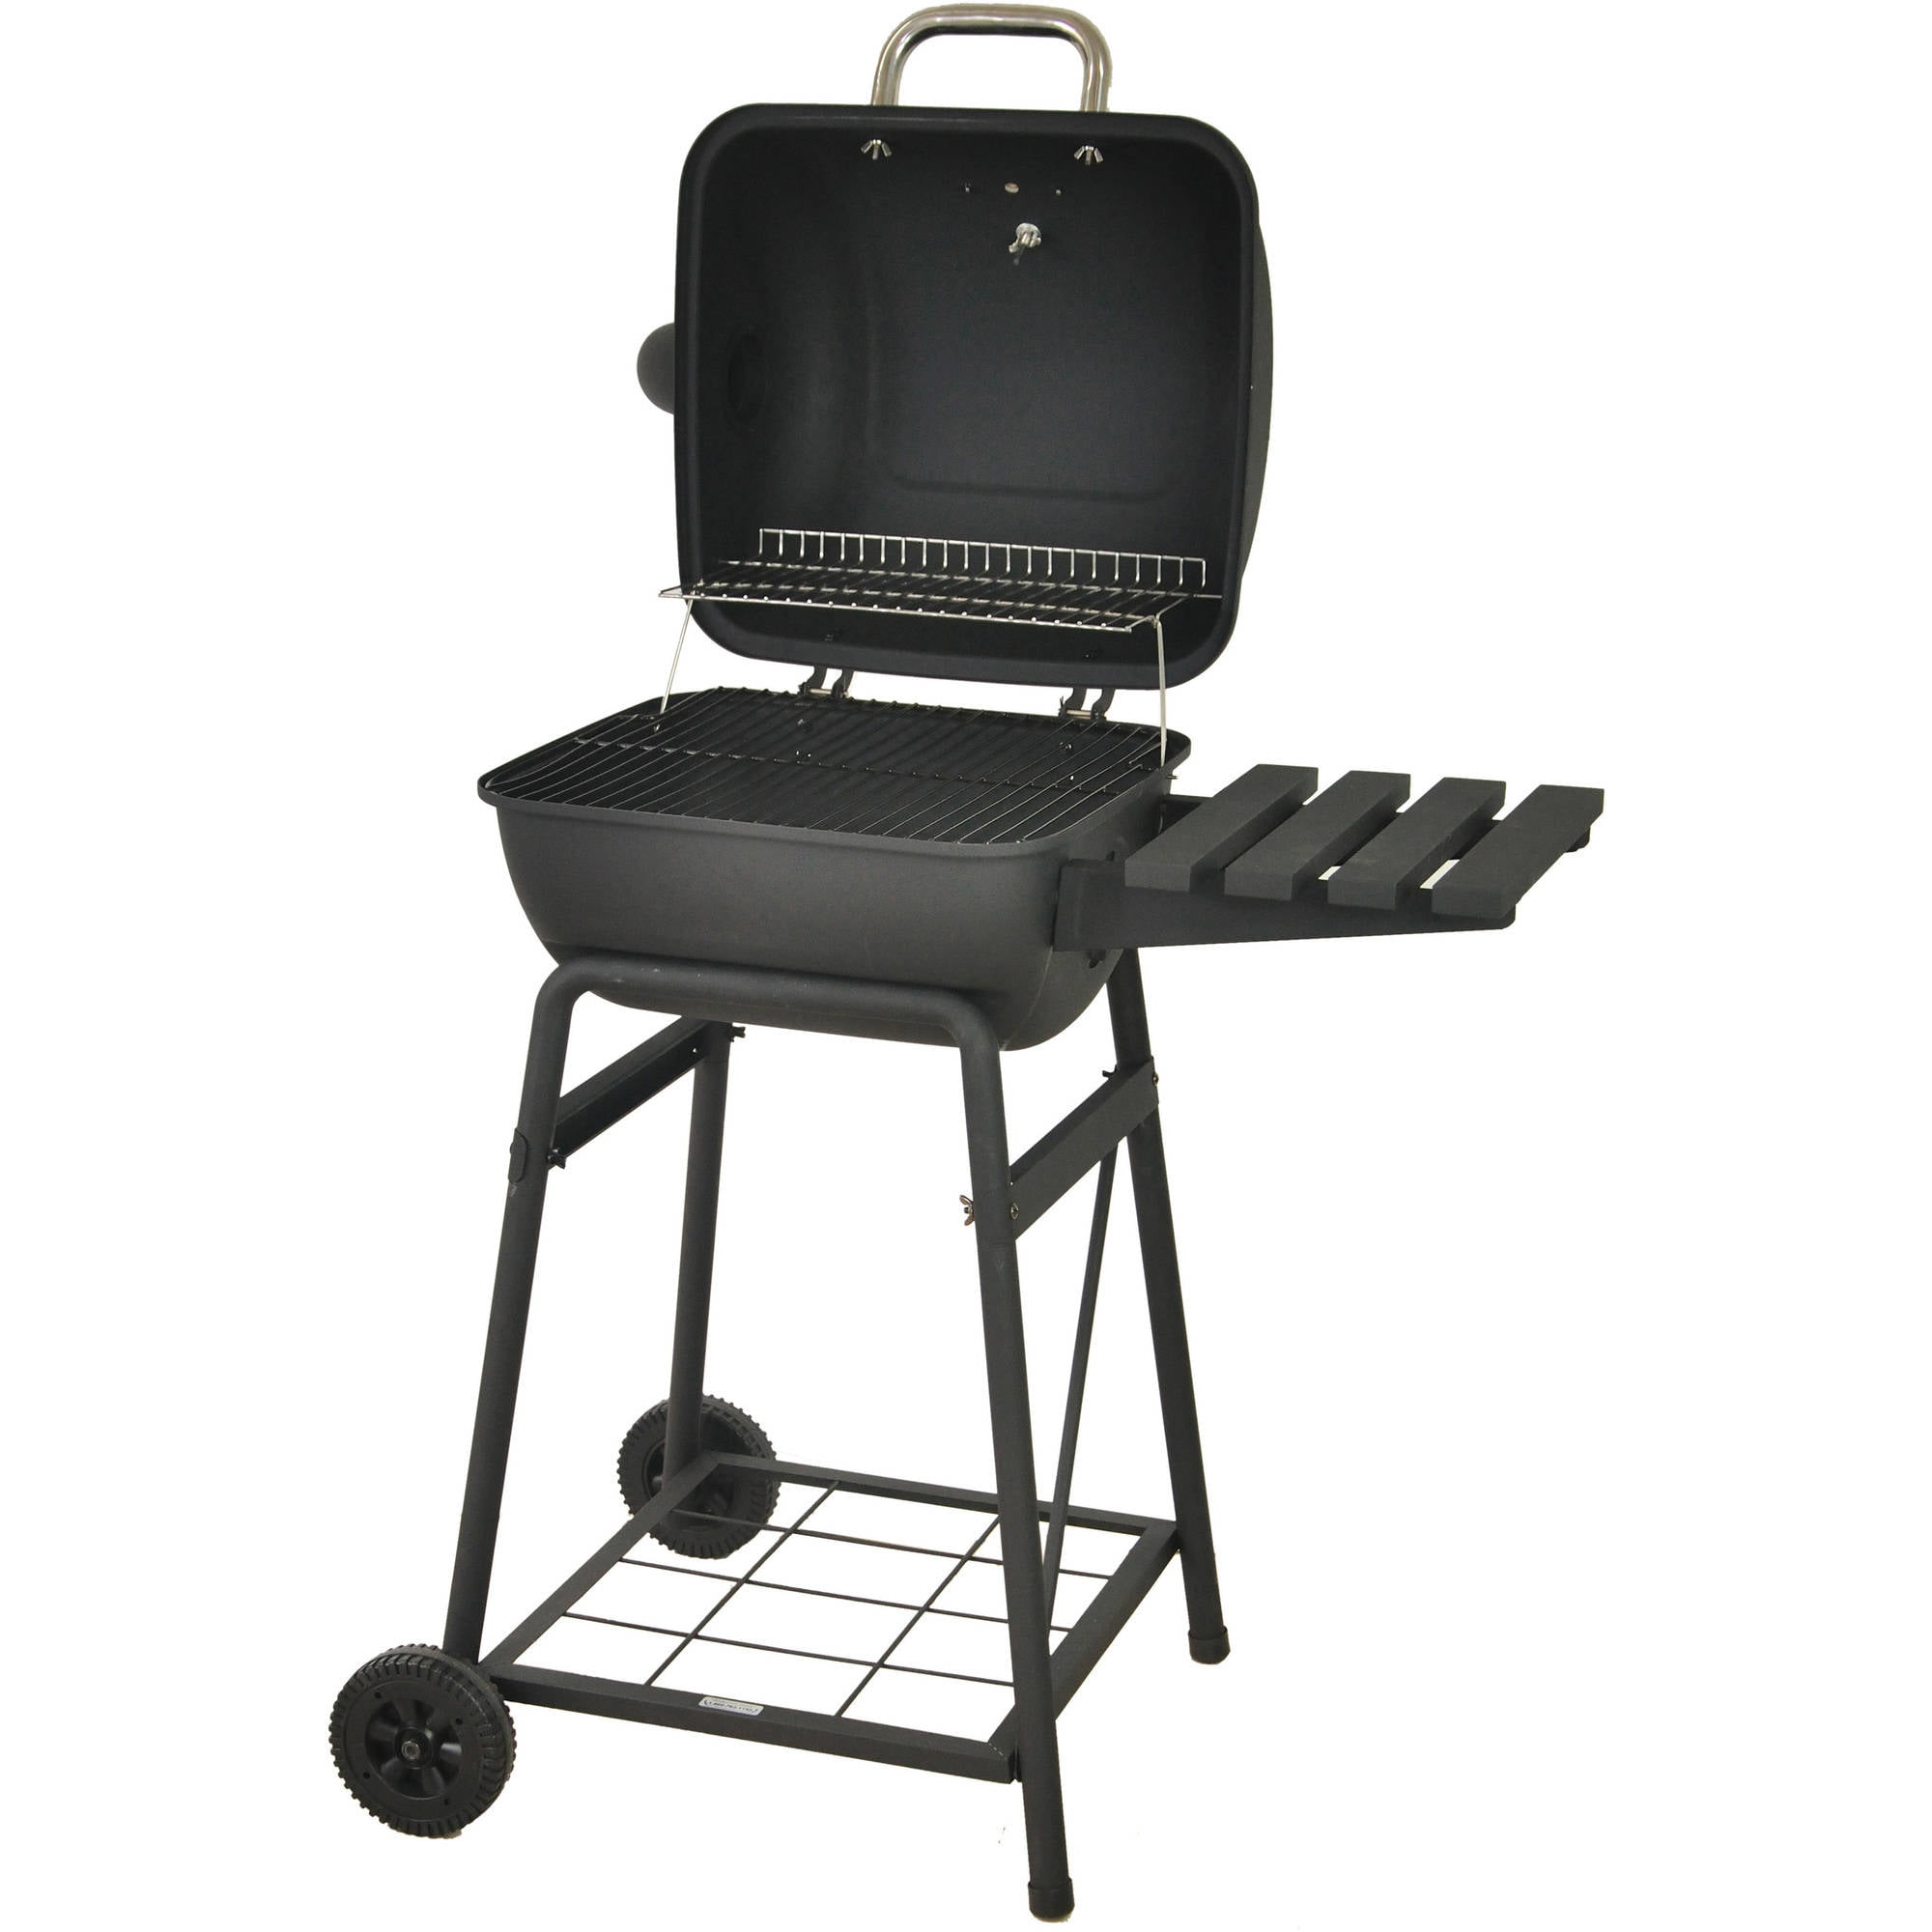 100 Charcoal Grills Walmart Com Amazon Com Texsport Barbecue Mini Portable Charcoal Bbq Grill